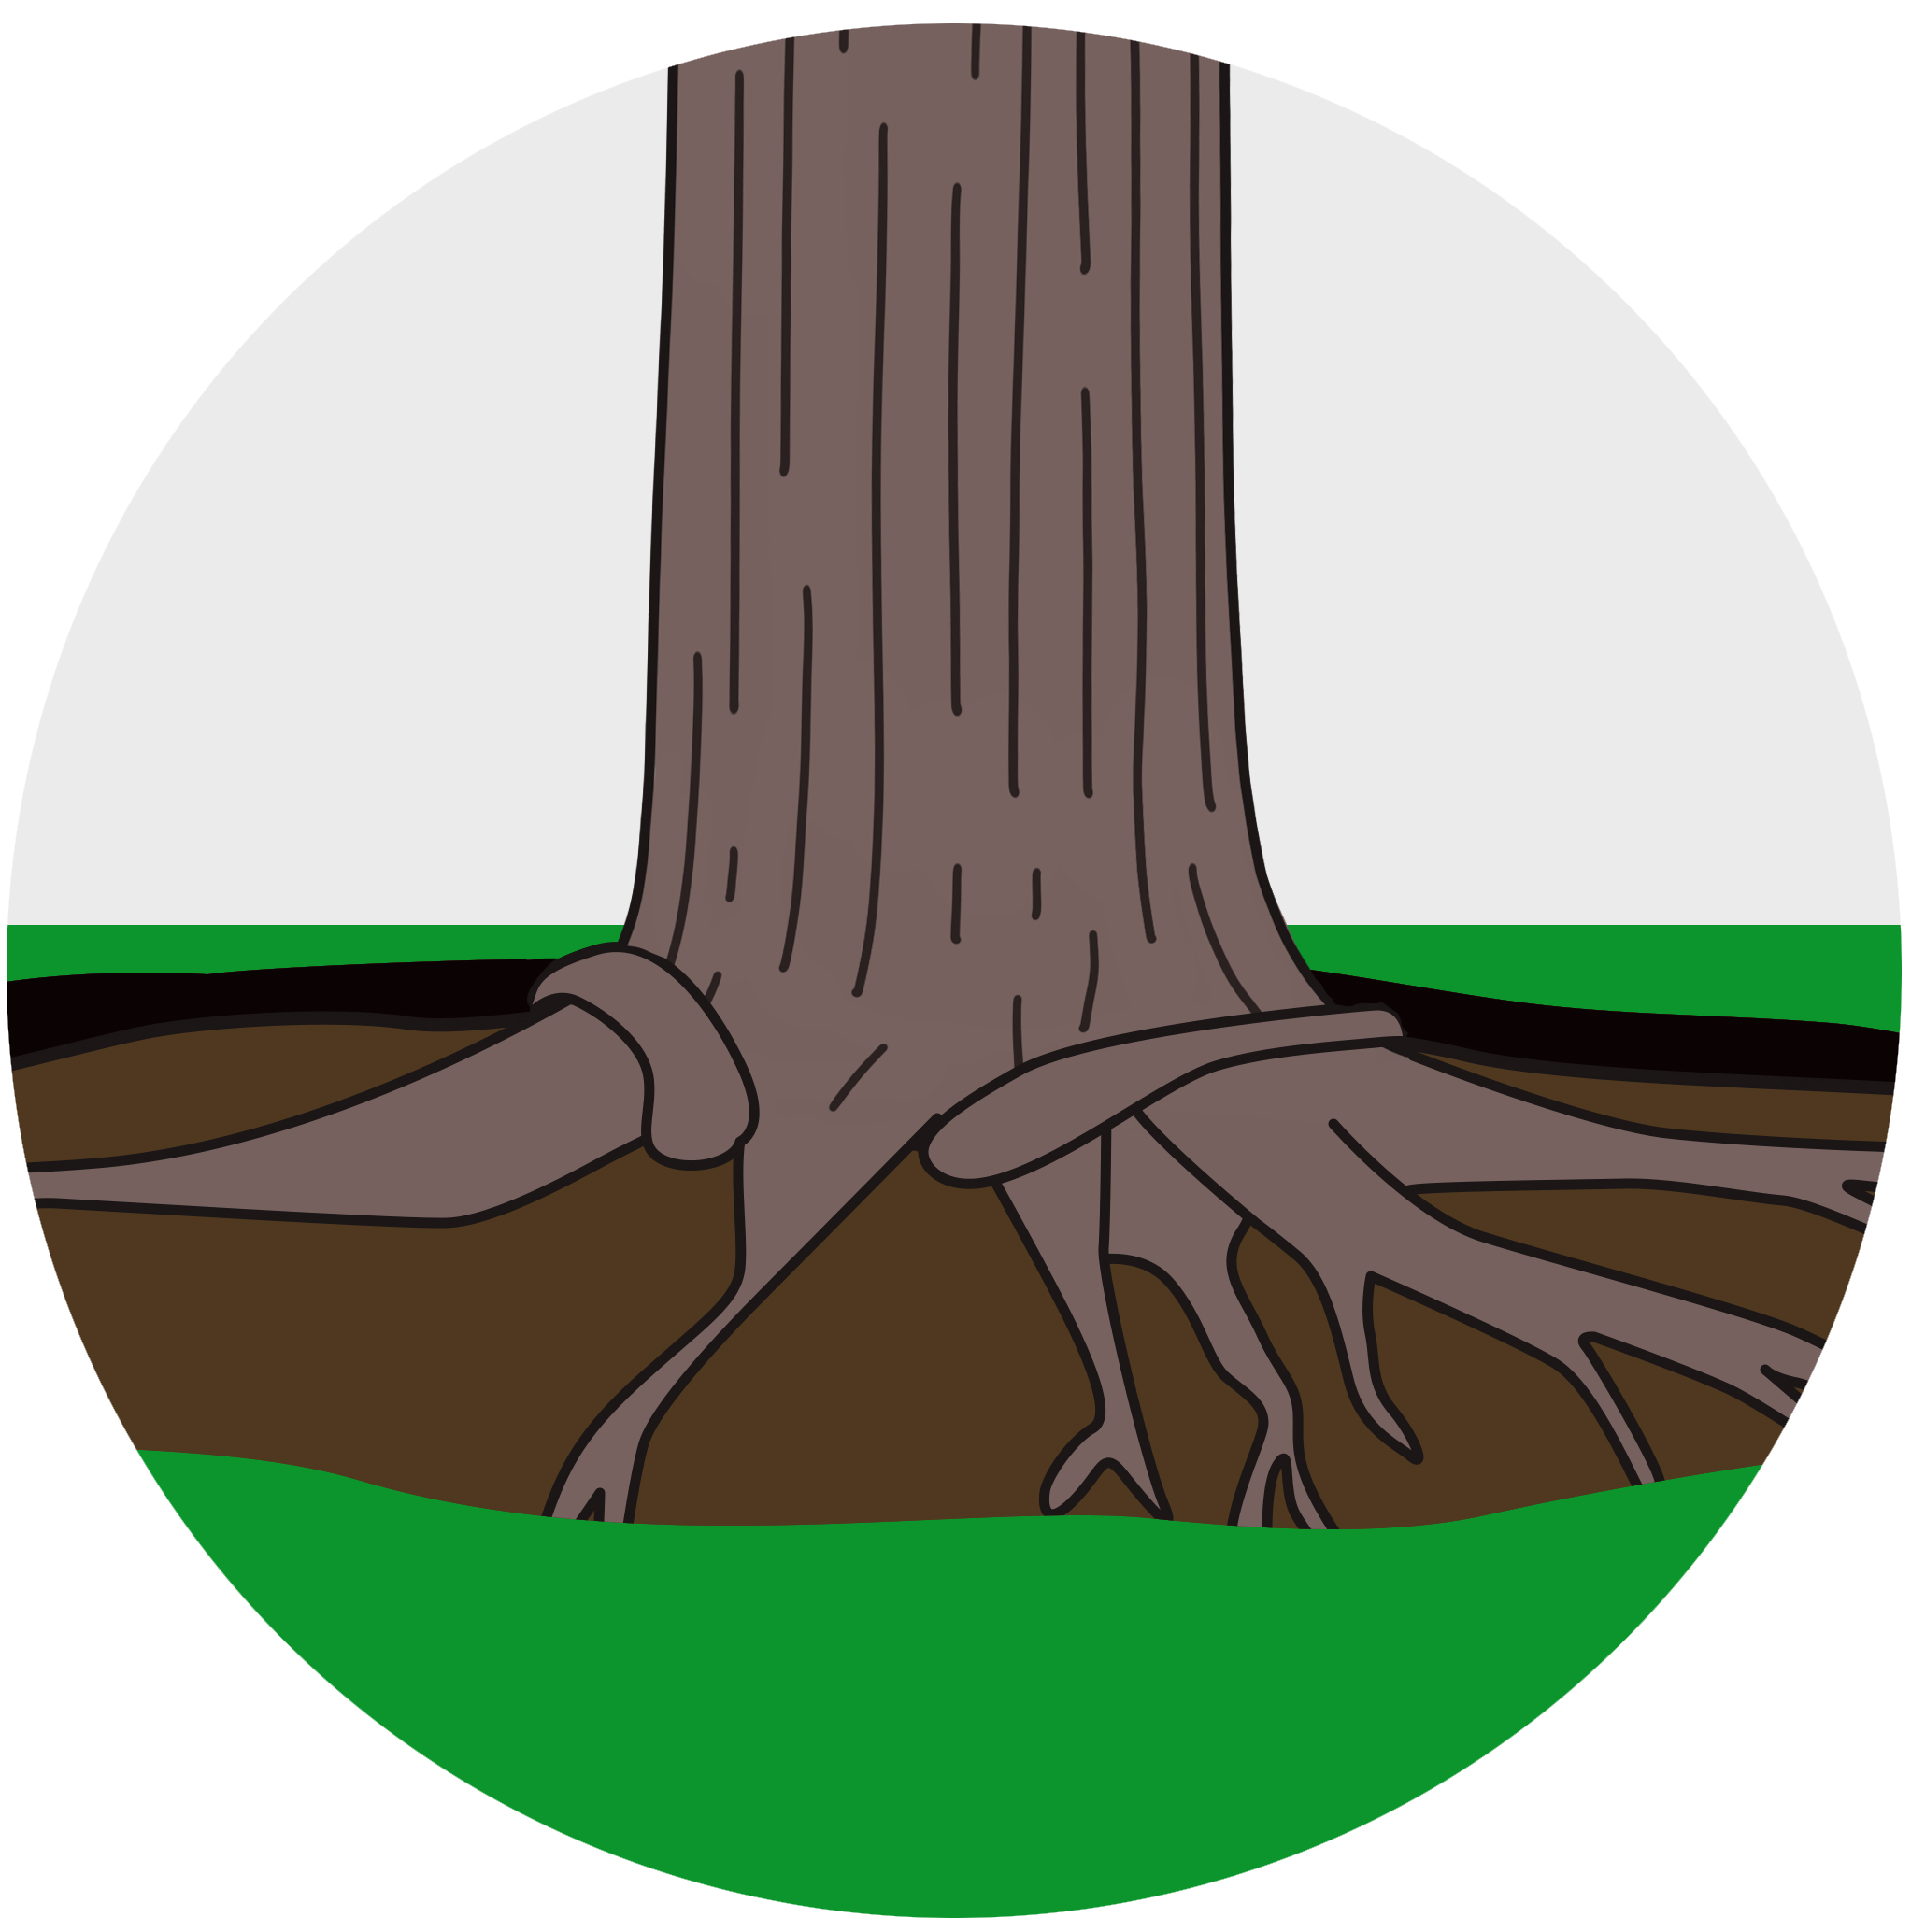 STEP 2 - Using an AirSpade, the soil will be blasted to expose the tree's root system below the surface. Don't worry, the AirSpade only moves the soil and does not hurt the tree and it's fibrous roots.